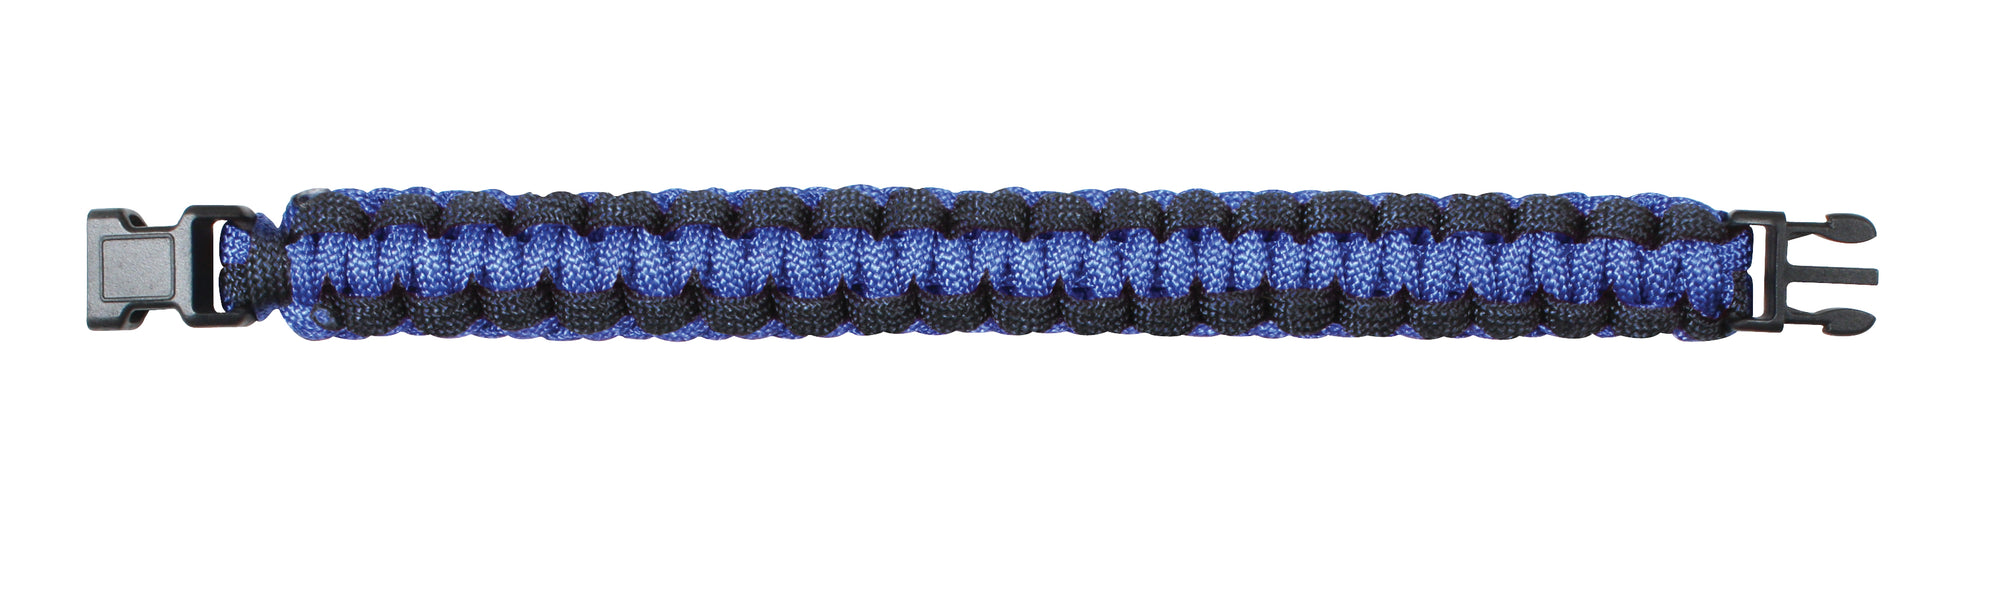 Rothco Thin Blue Line Paracord Bracelet - red-diamond-uniform-police-supply